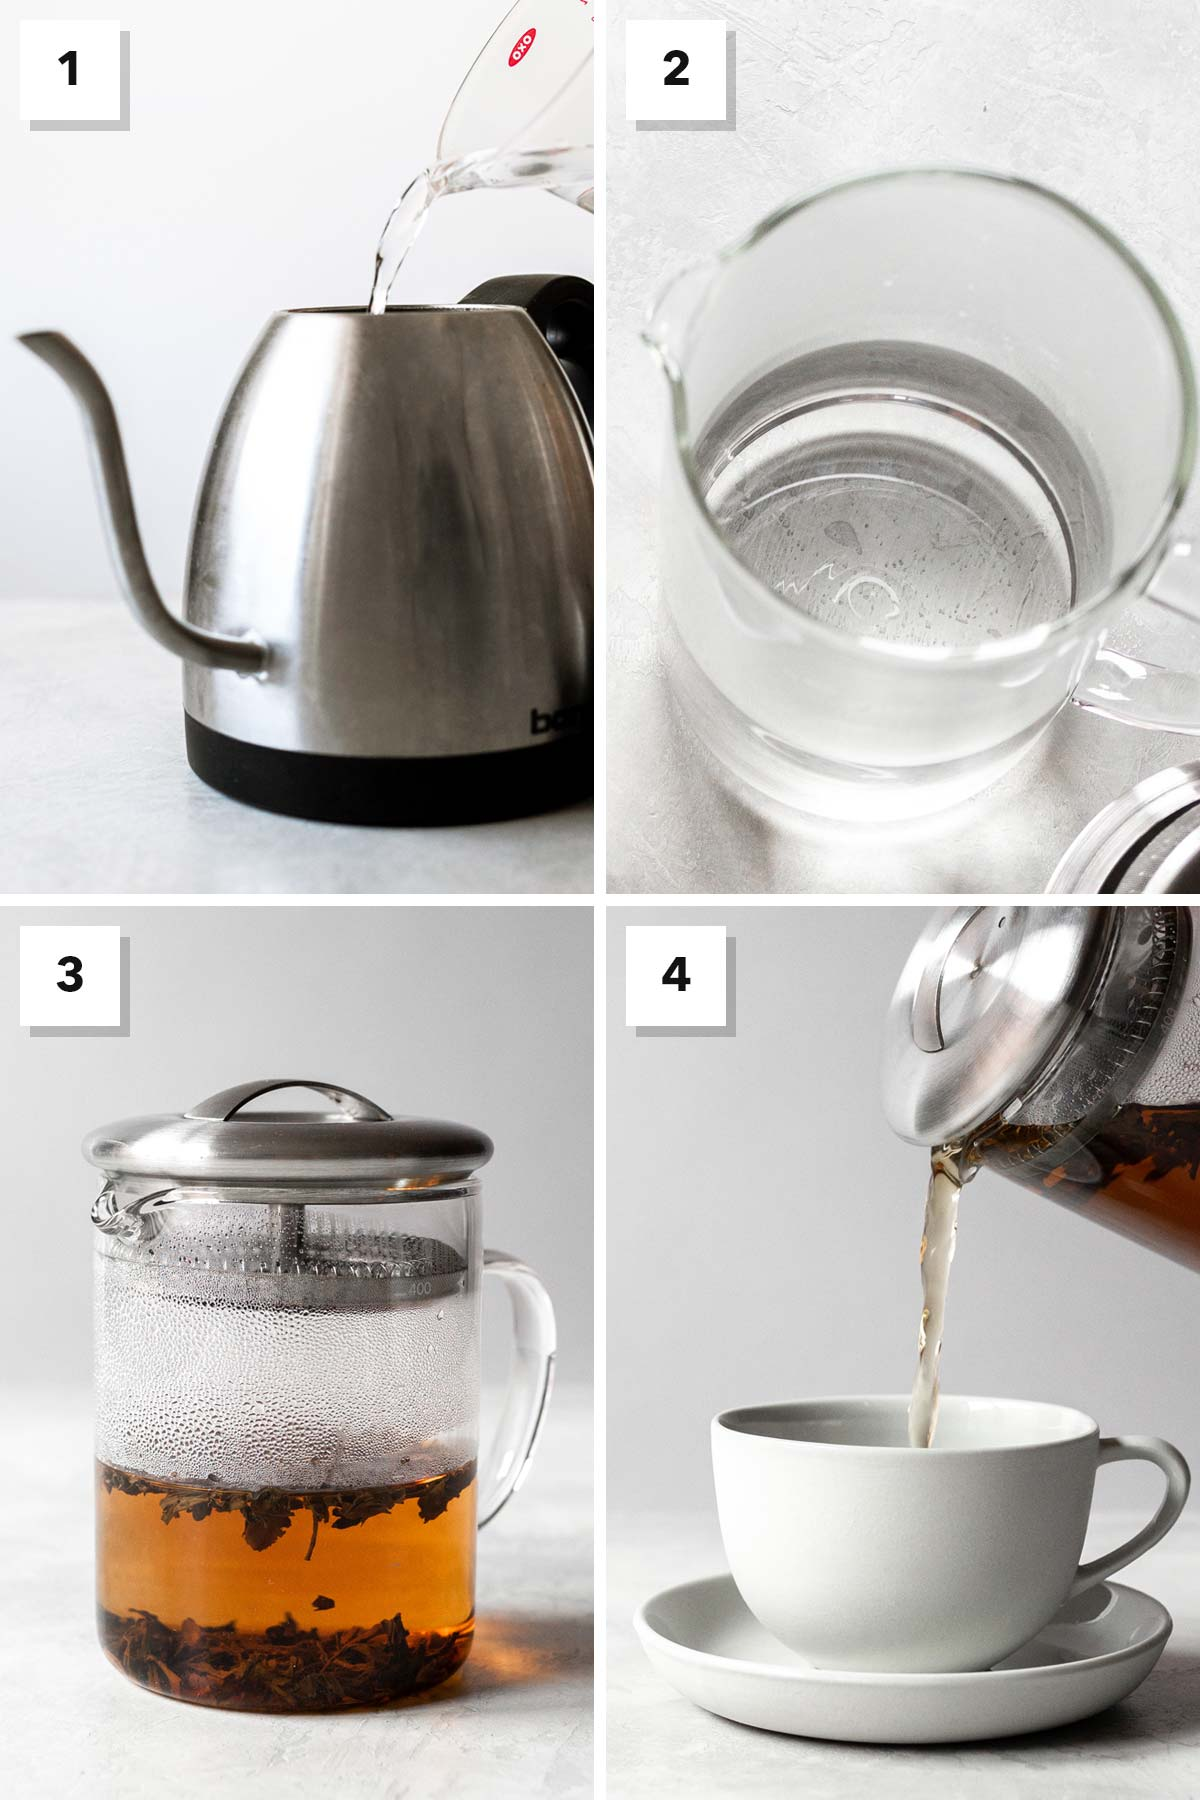 Four photo collage showing steps to make milk tea.